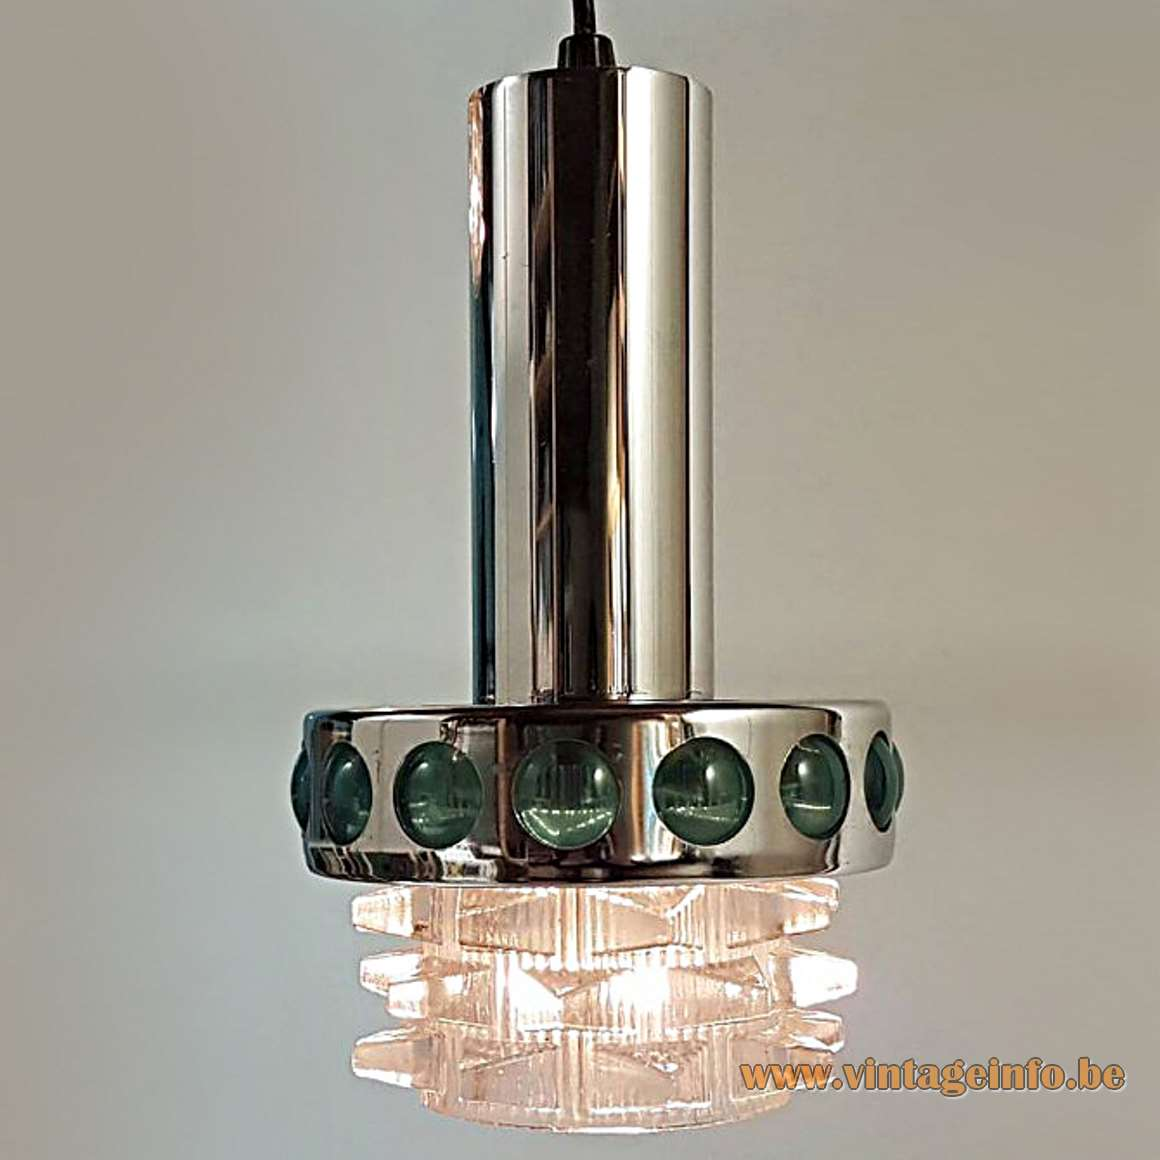 1960s Red Glass & Chrome Chandelier - Green version